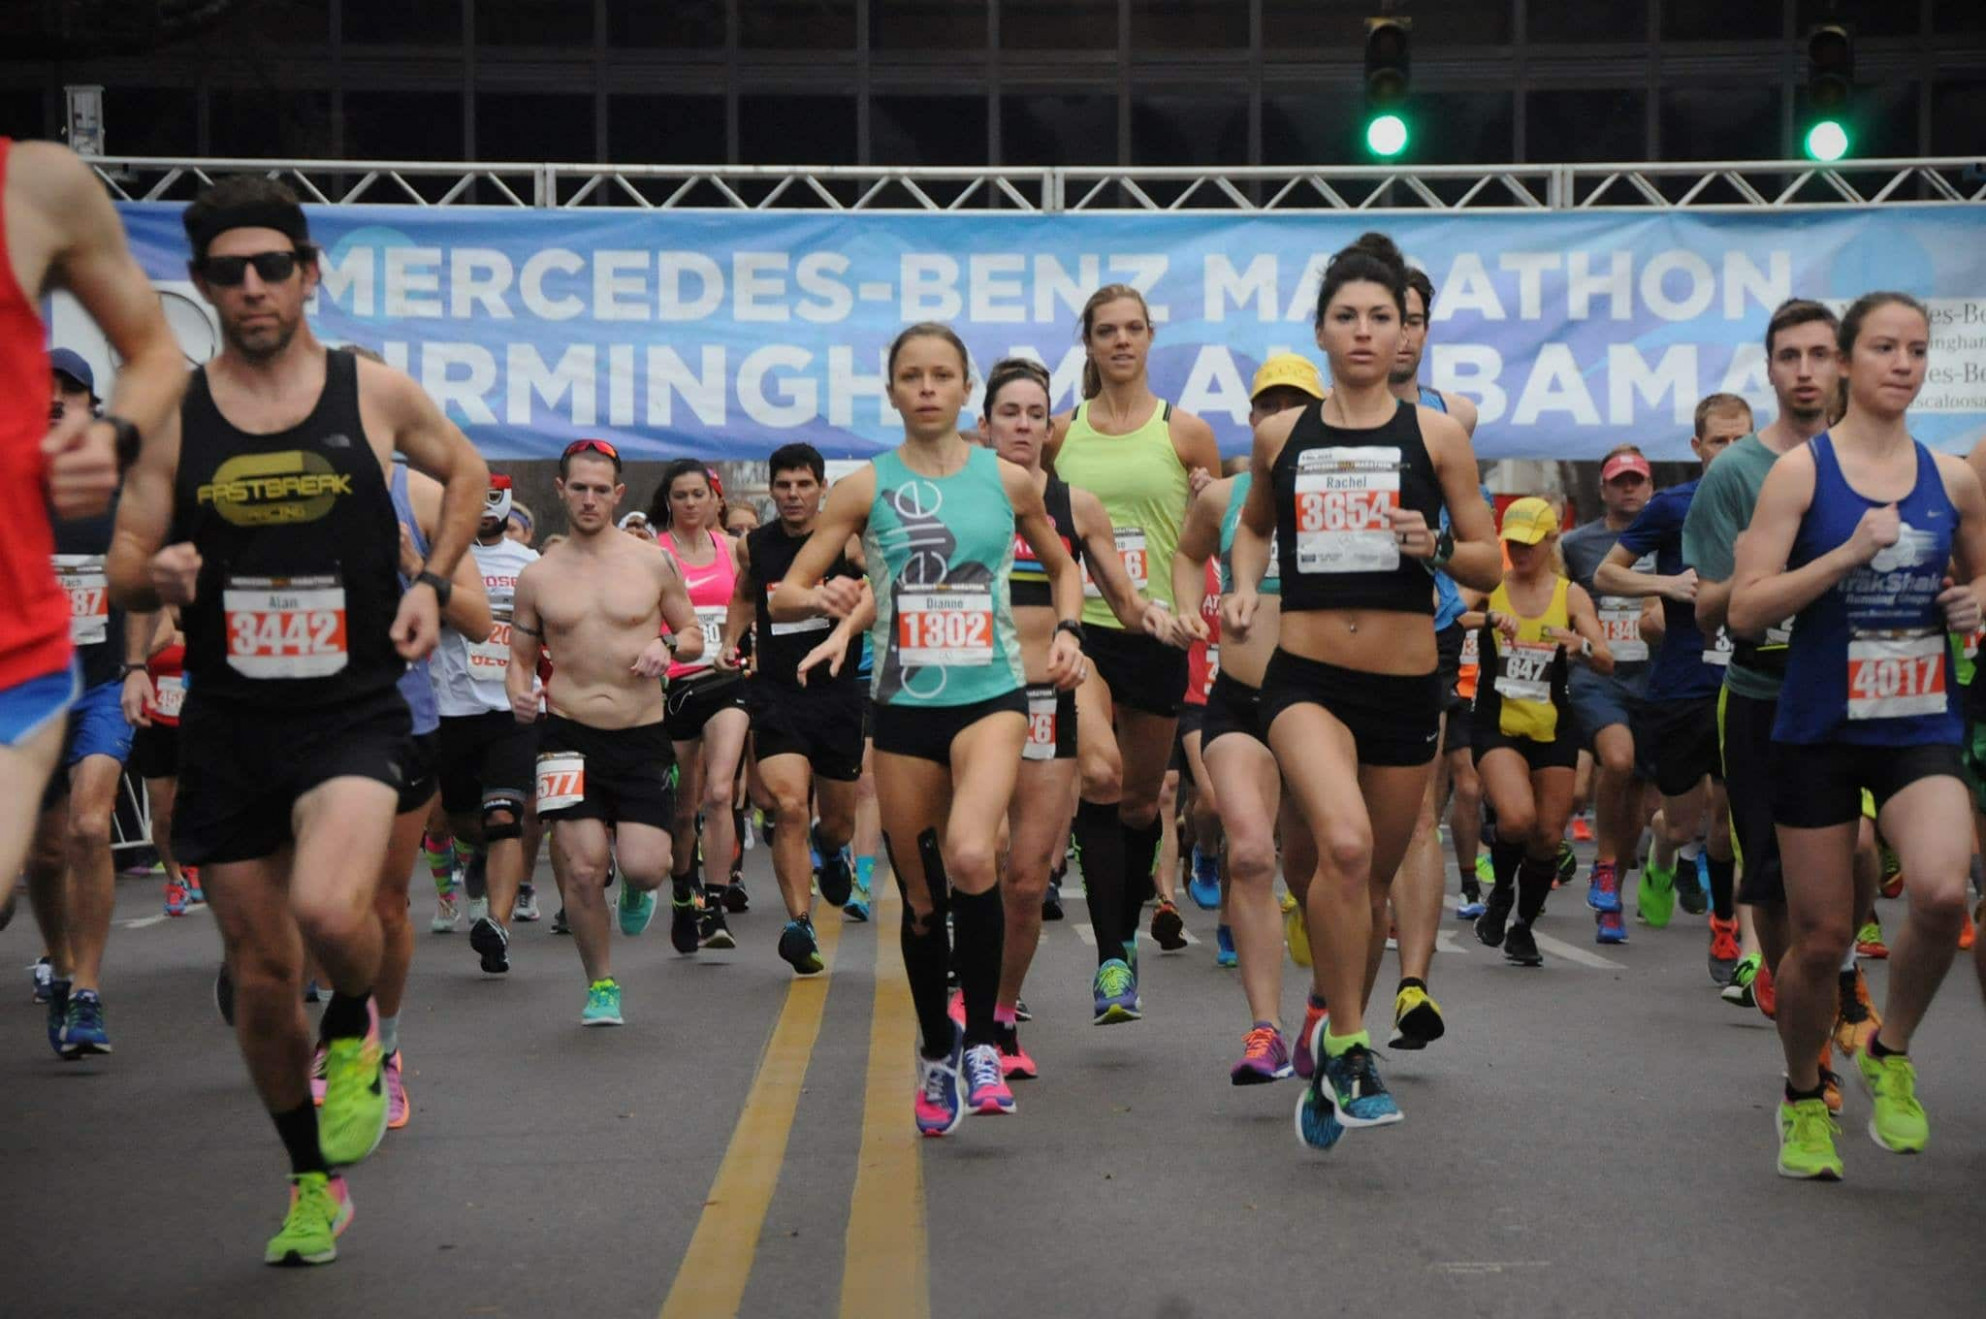 Your guide to the Mercedes-Benz Marathon Weekend and its 7.7 ..